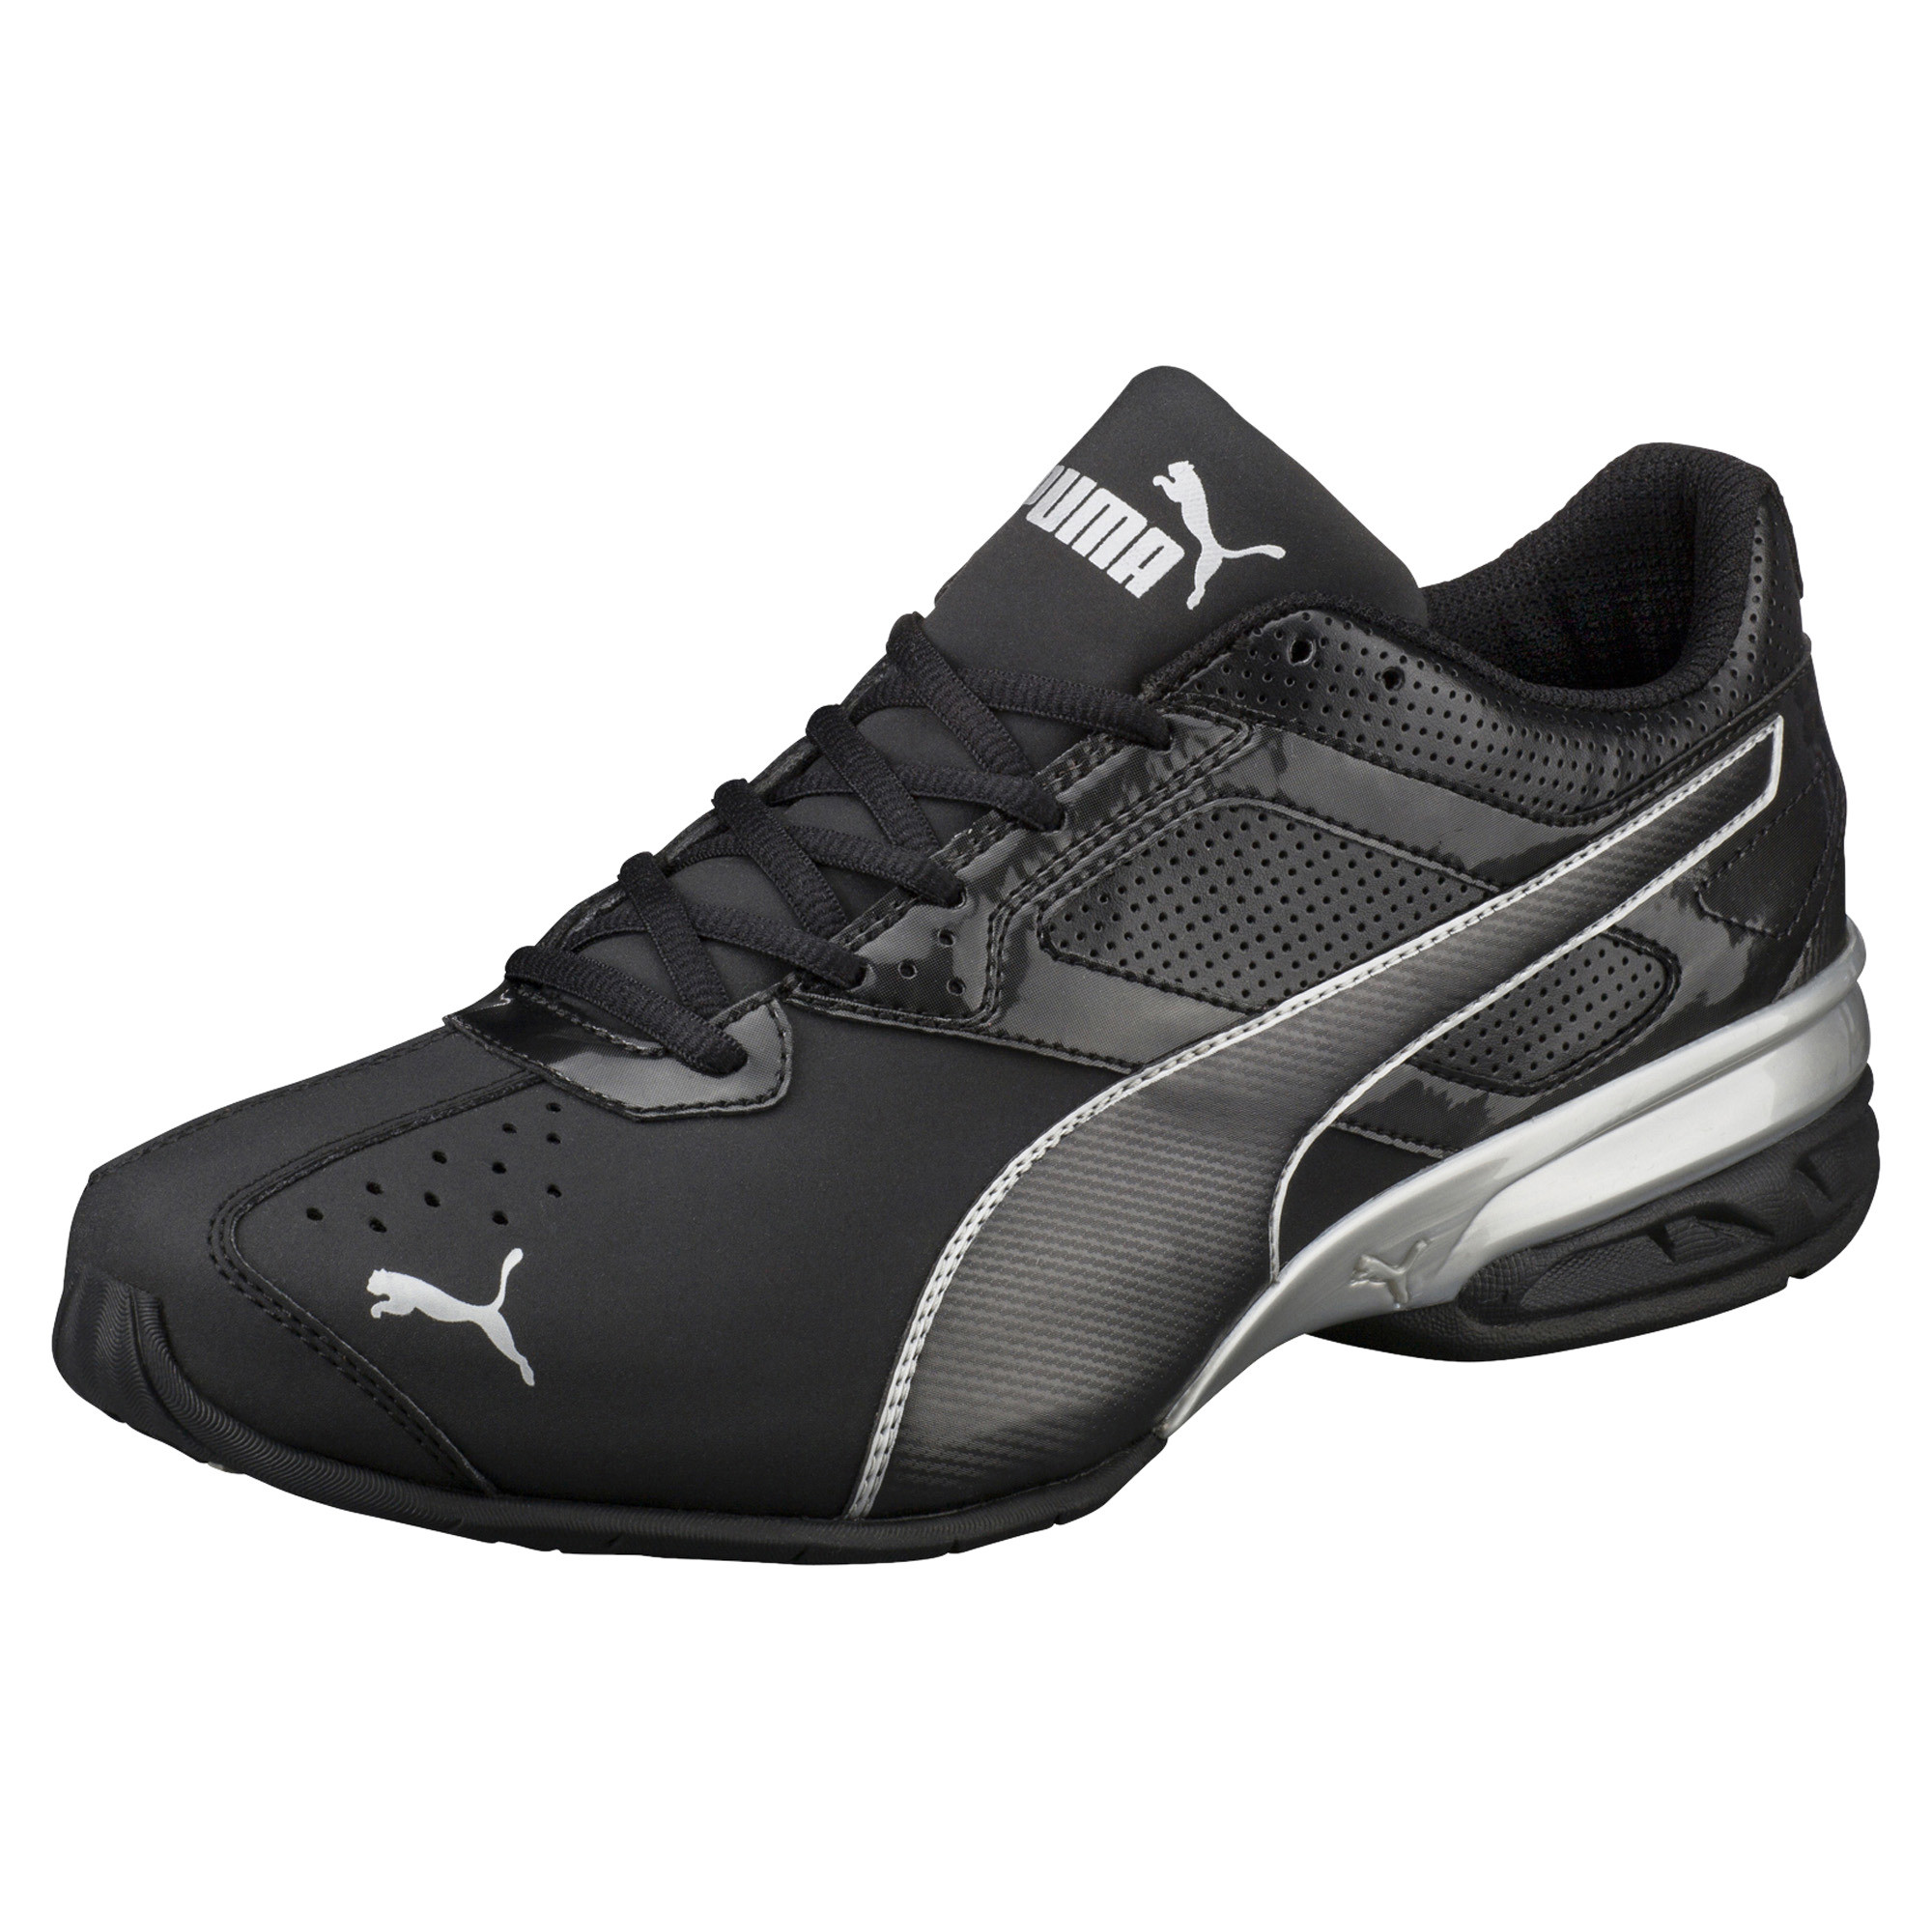 PUMA-Tazon-6-FM-Men-039-s-Sneakers-Men-Shoe-Running thumbnail 13